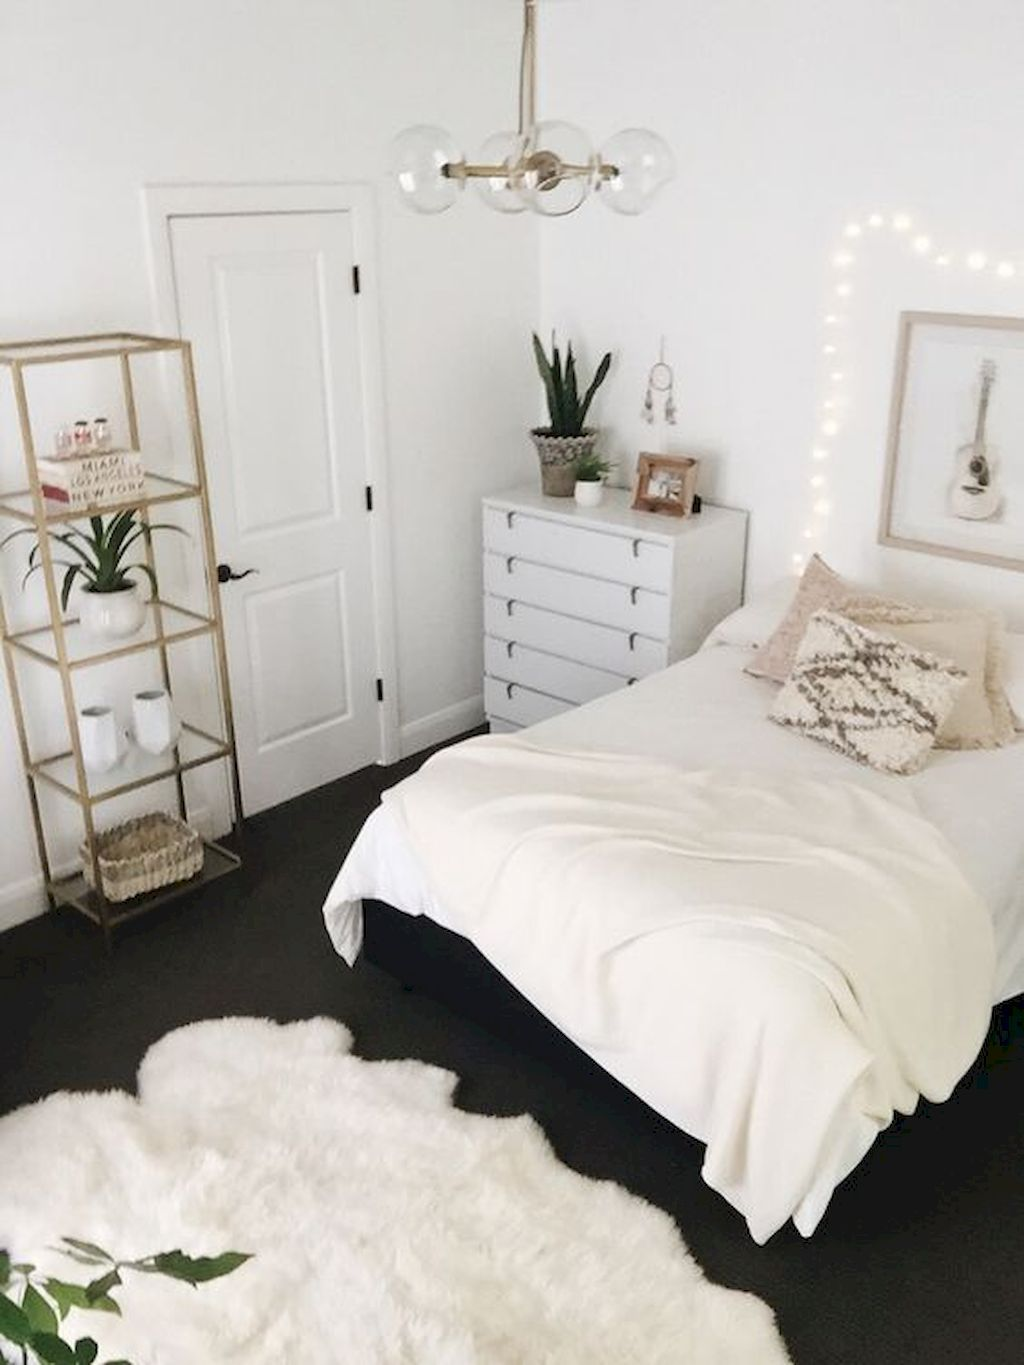 Cool 20 Small Fisrt Apartment Bedroom Decorating Ideas Https Roomadness